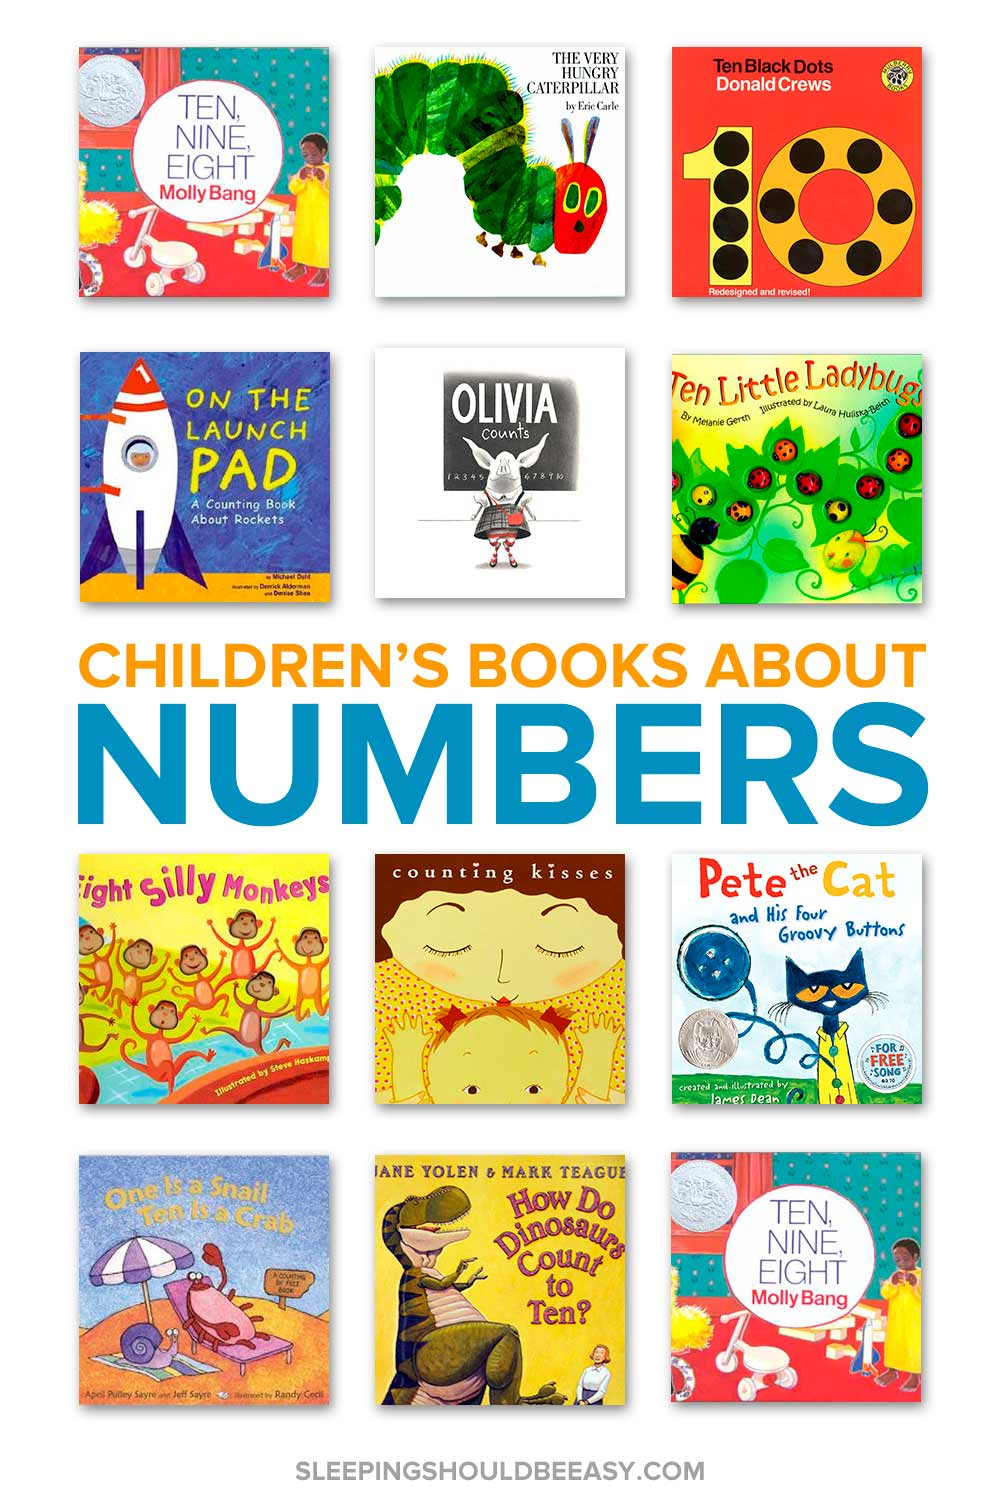 A collection of children's books about numbers